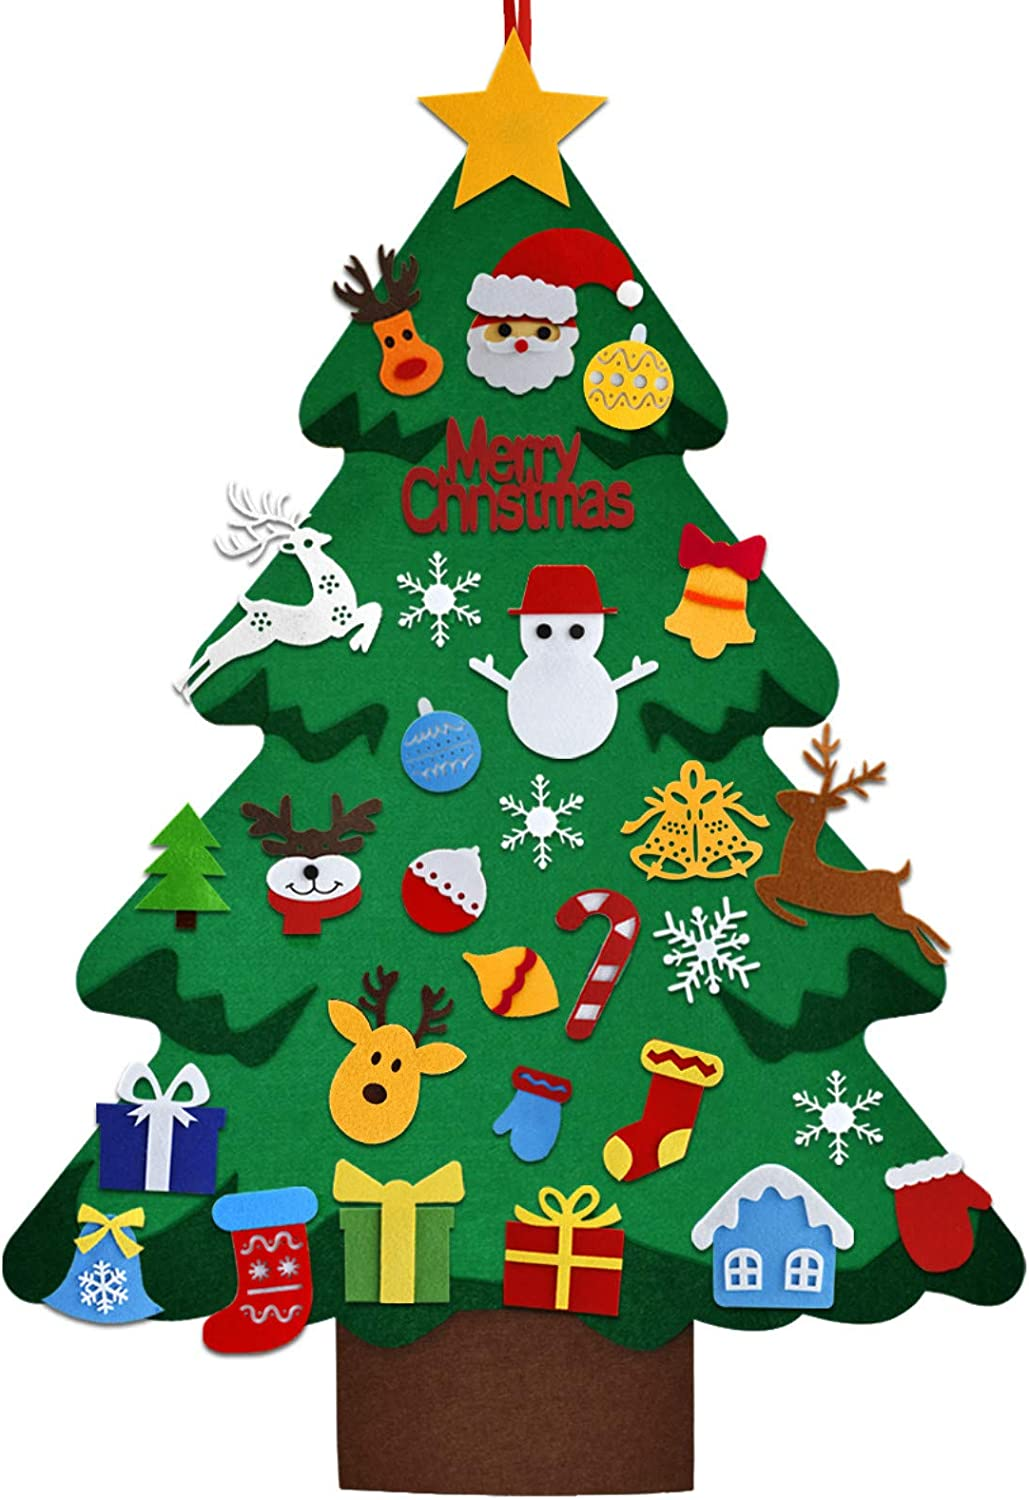 UBEGOOD Felt Christmas Tree for Toddlers, 3.2 FT DIY Christmas Tree Set with 37 Pcs Ornaments, Wall Hanging Xmas Tree Home Office Classroom Door Decorations, Kids Children Gift